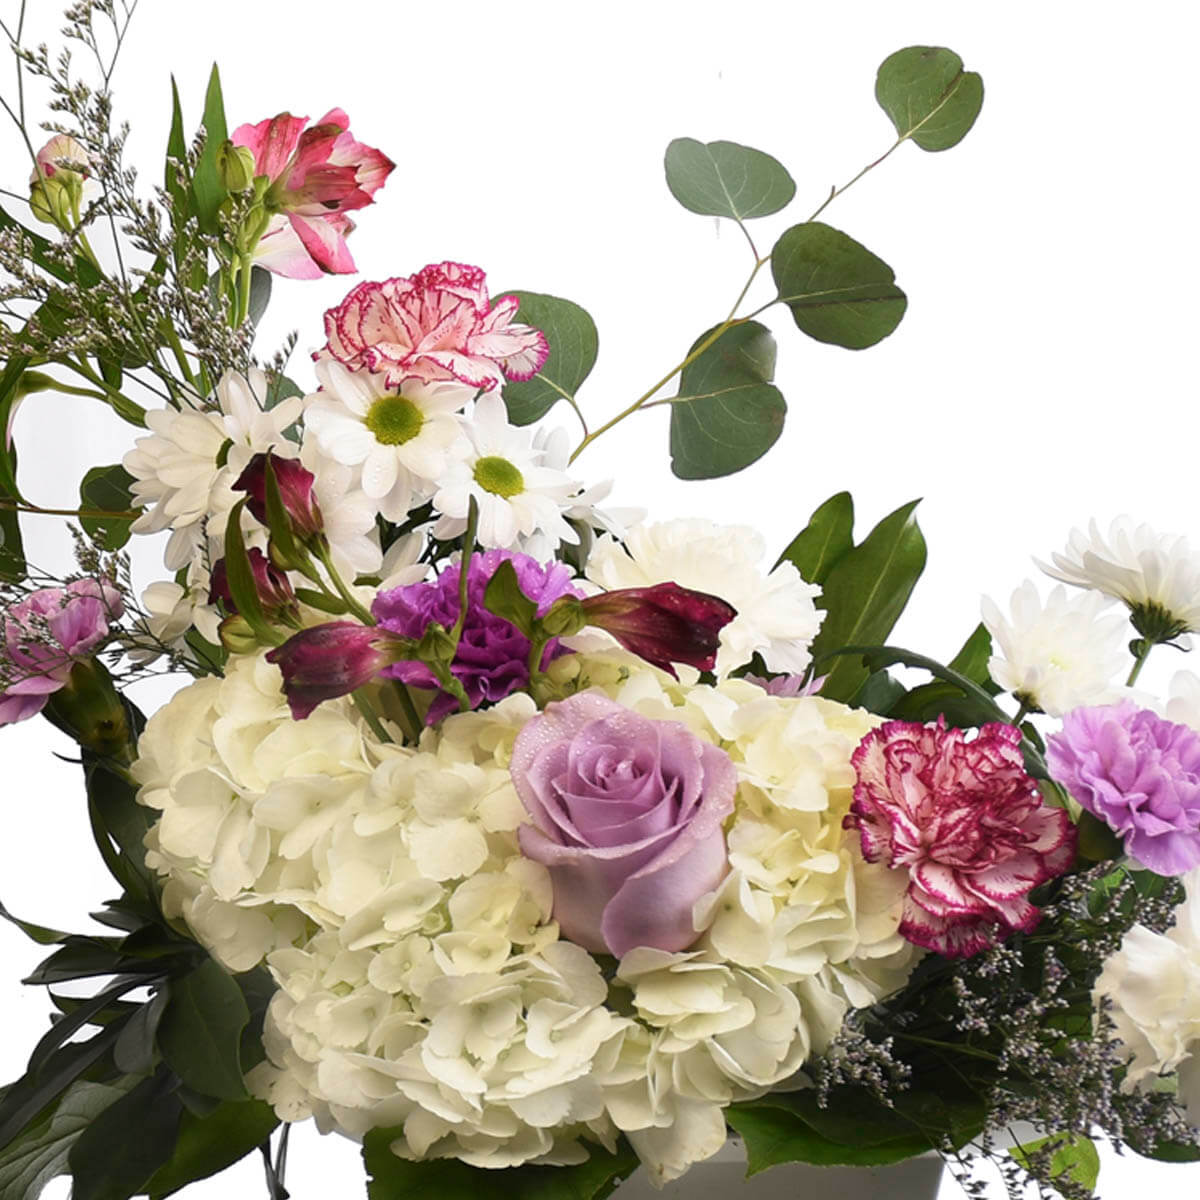 Mixed flower arrangement with hydrangea, caspia, carnations and roses. Local Floral shop in Burnaby Heights